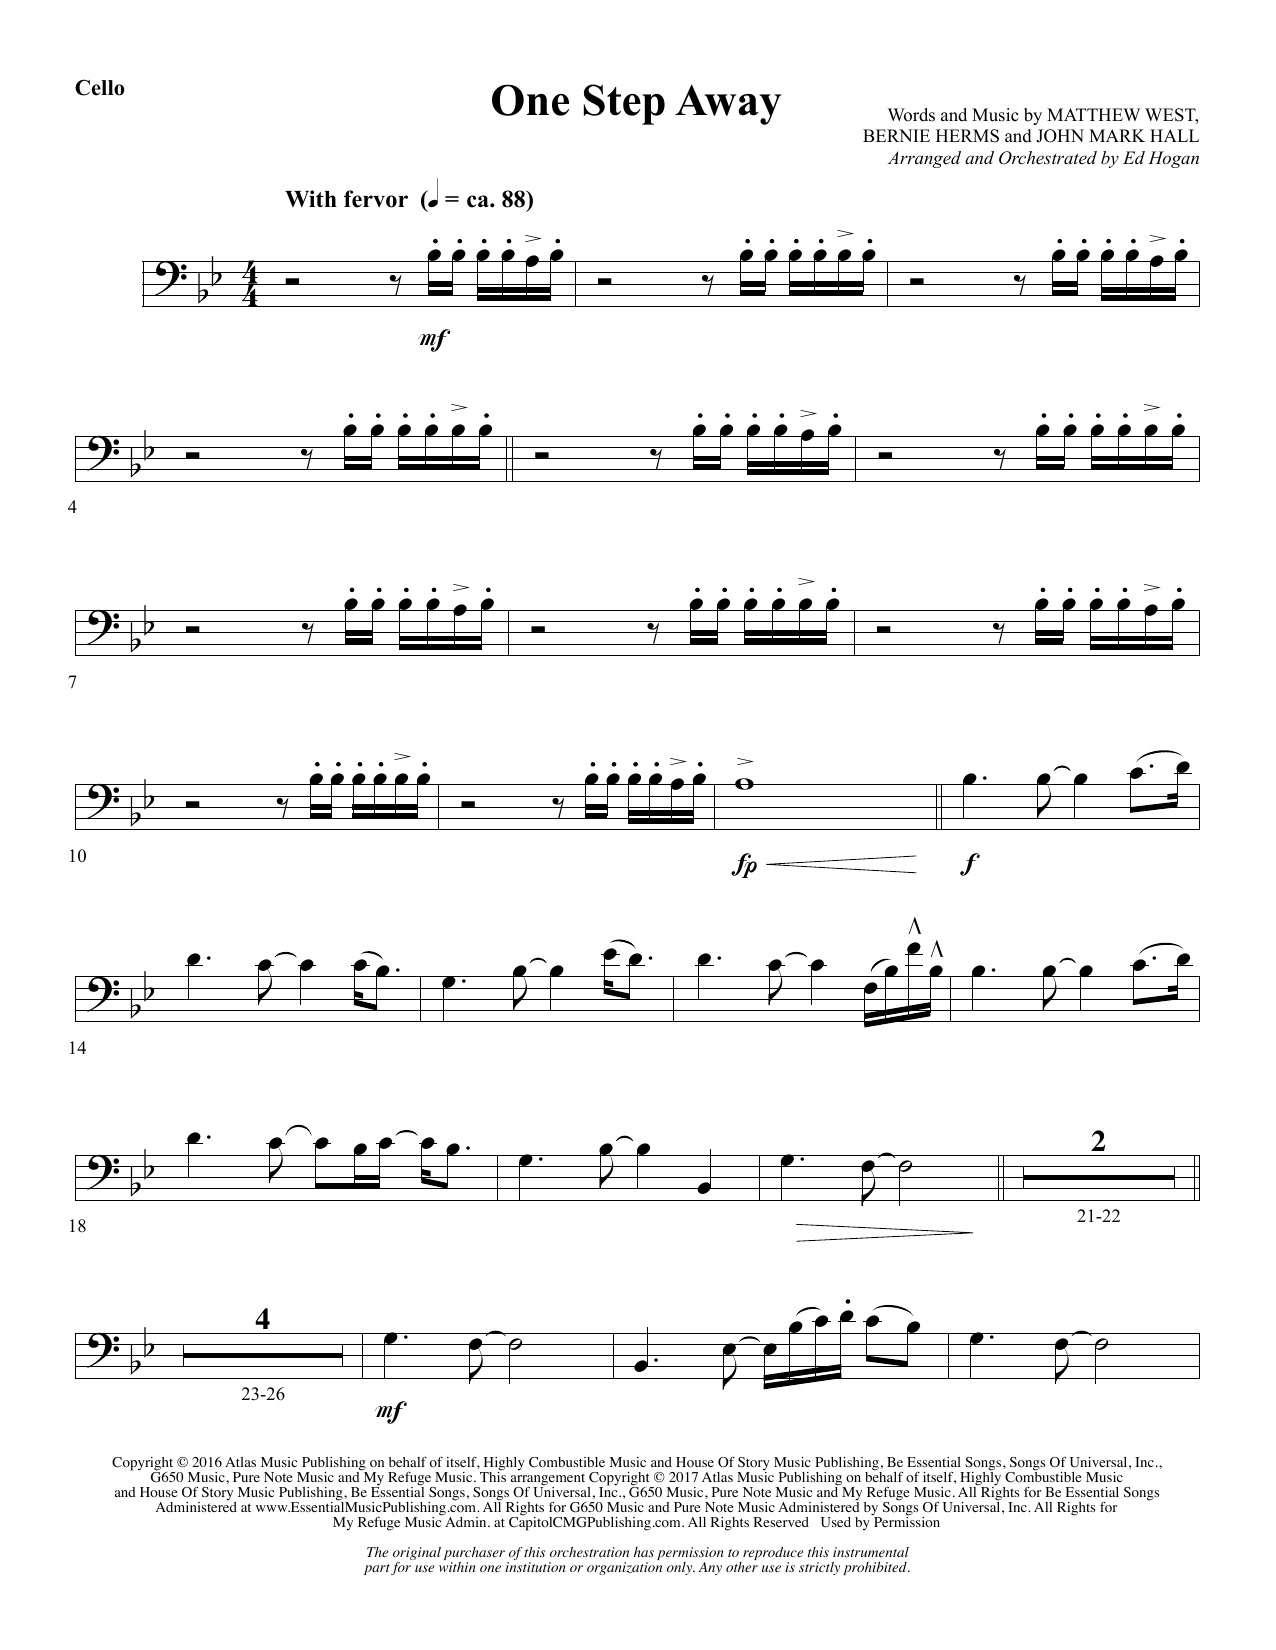 Casting Crowns - One Step Away - Cello